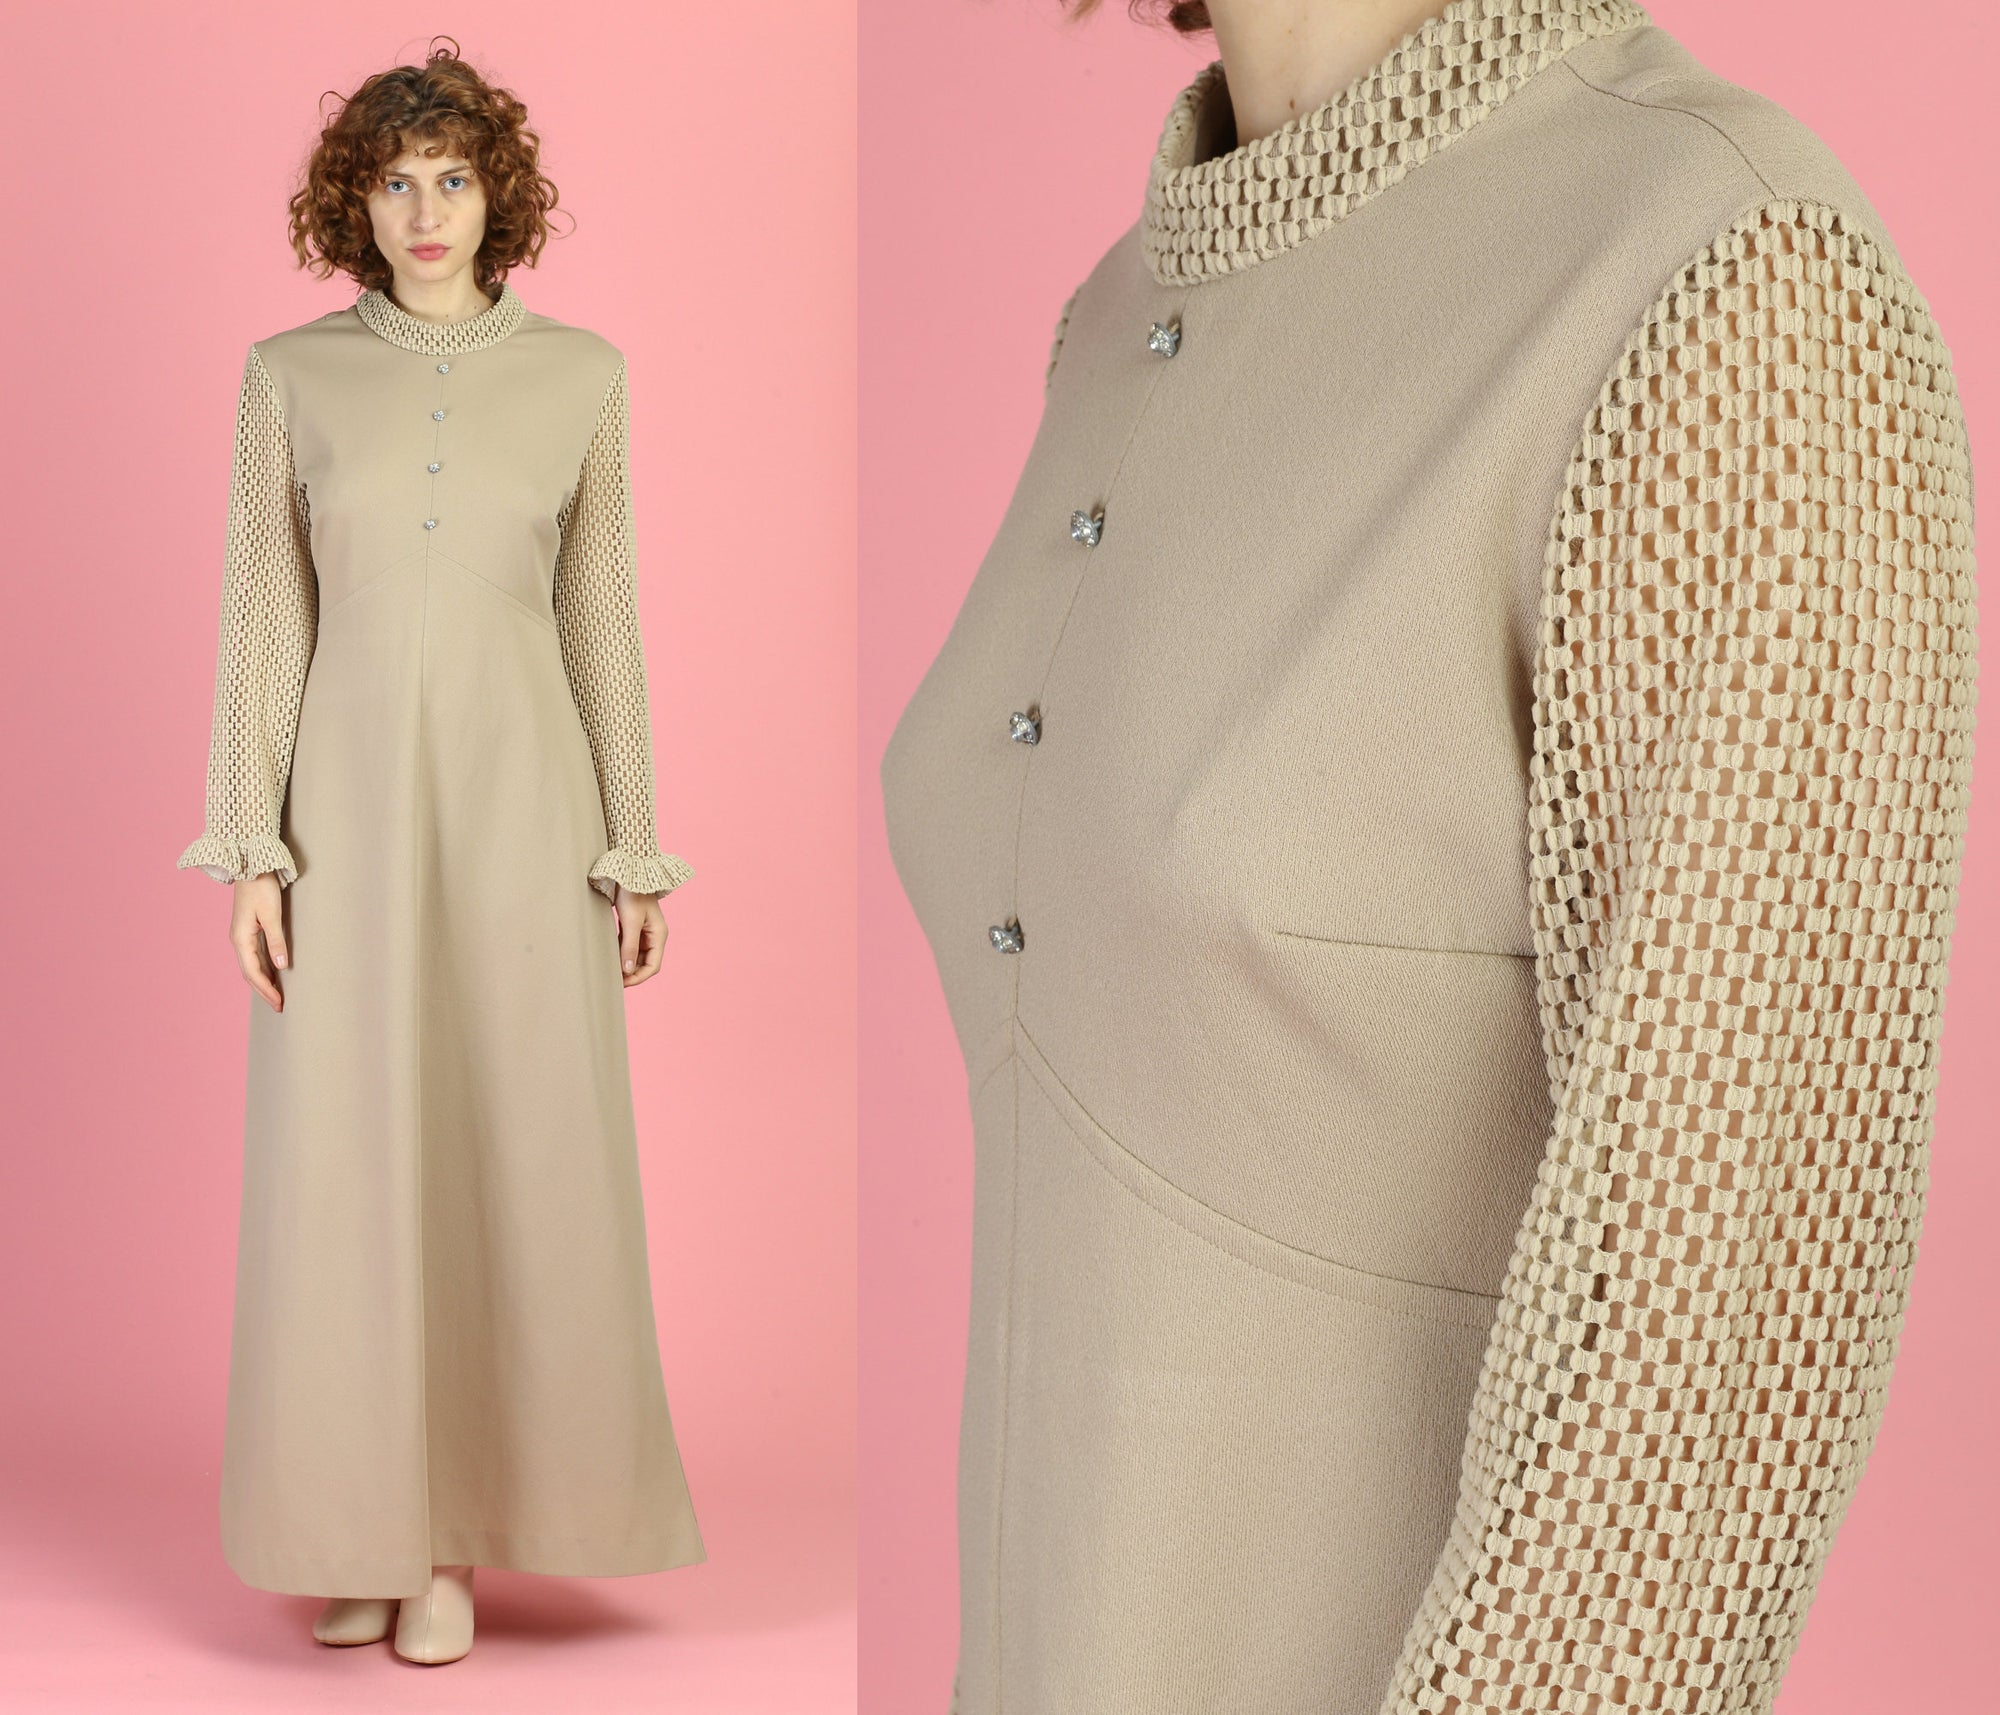 70s Taupe Mesh Sleeve Maxi Dress - Large to XL